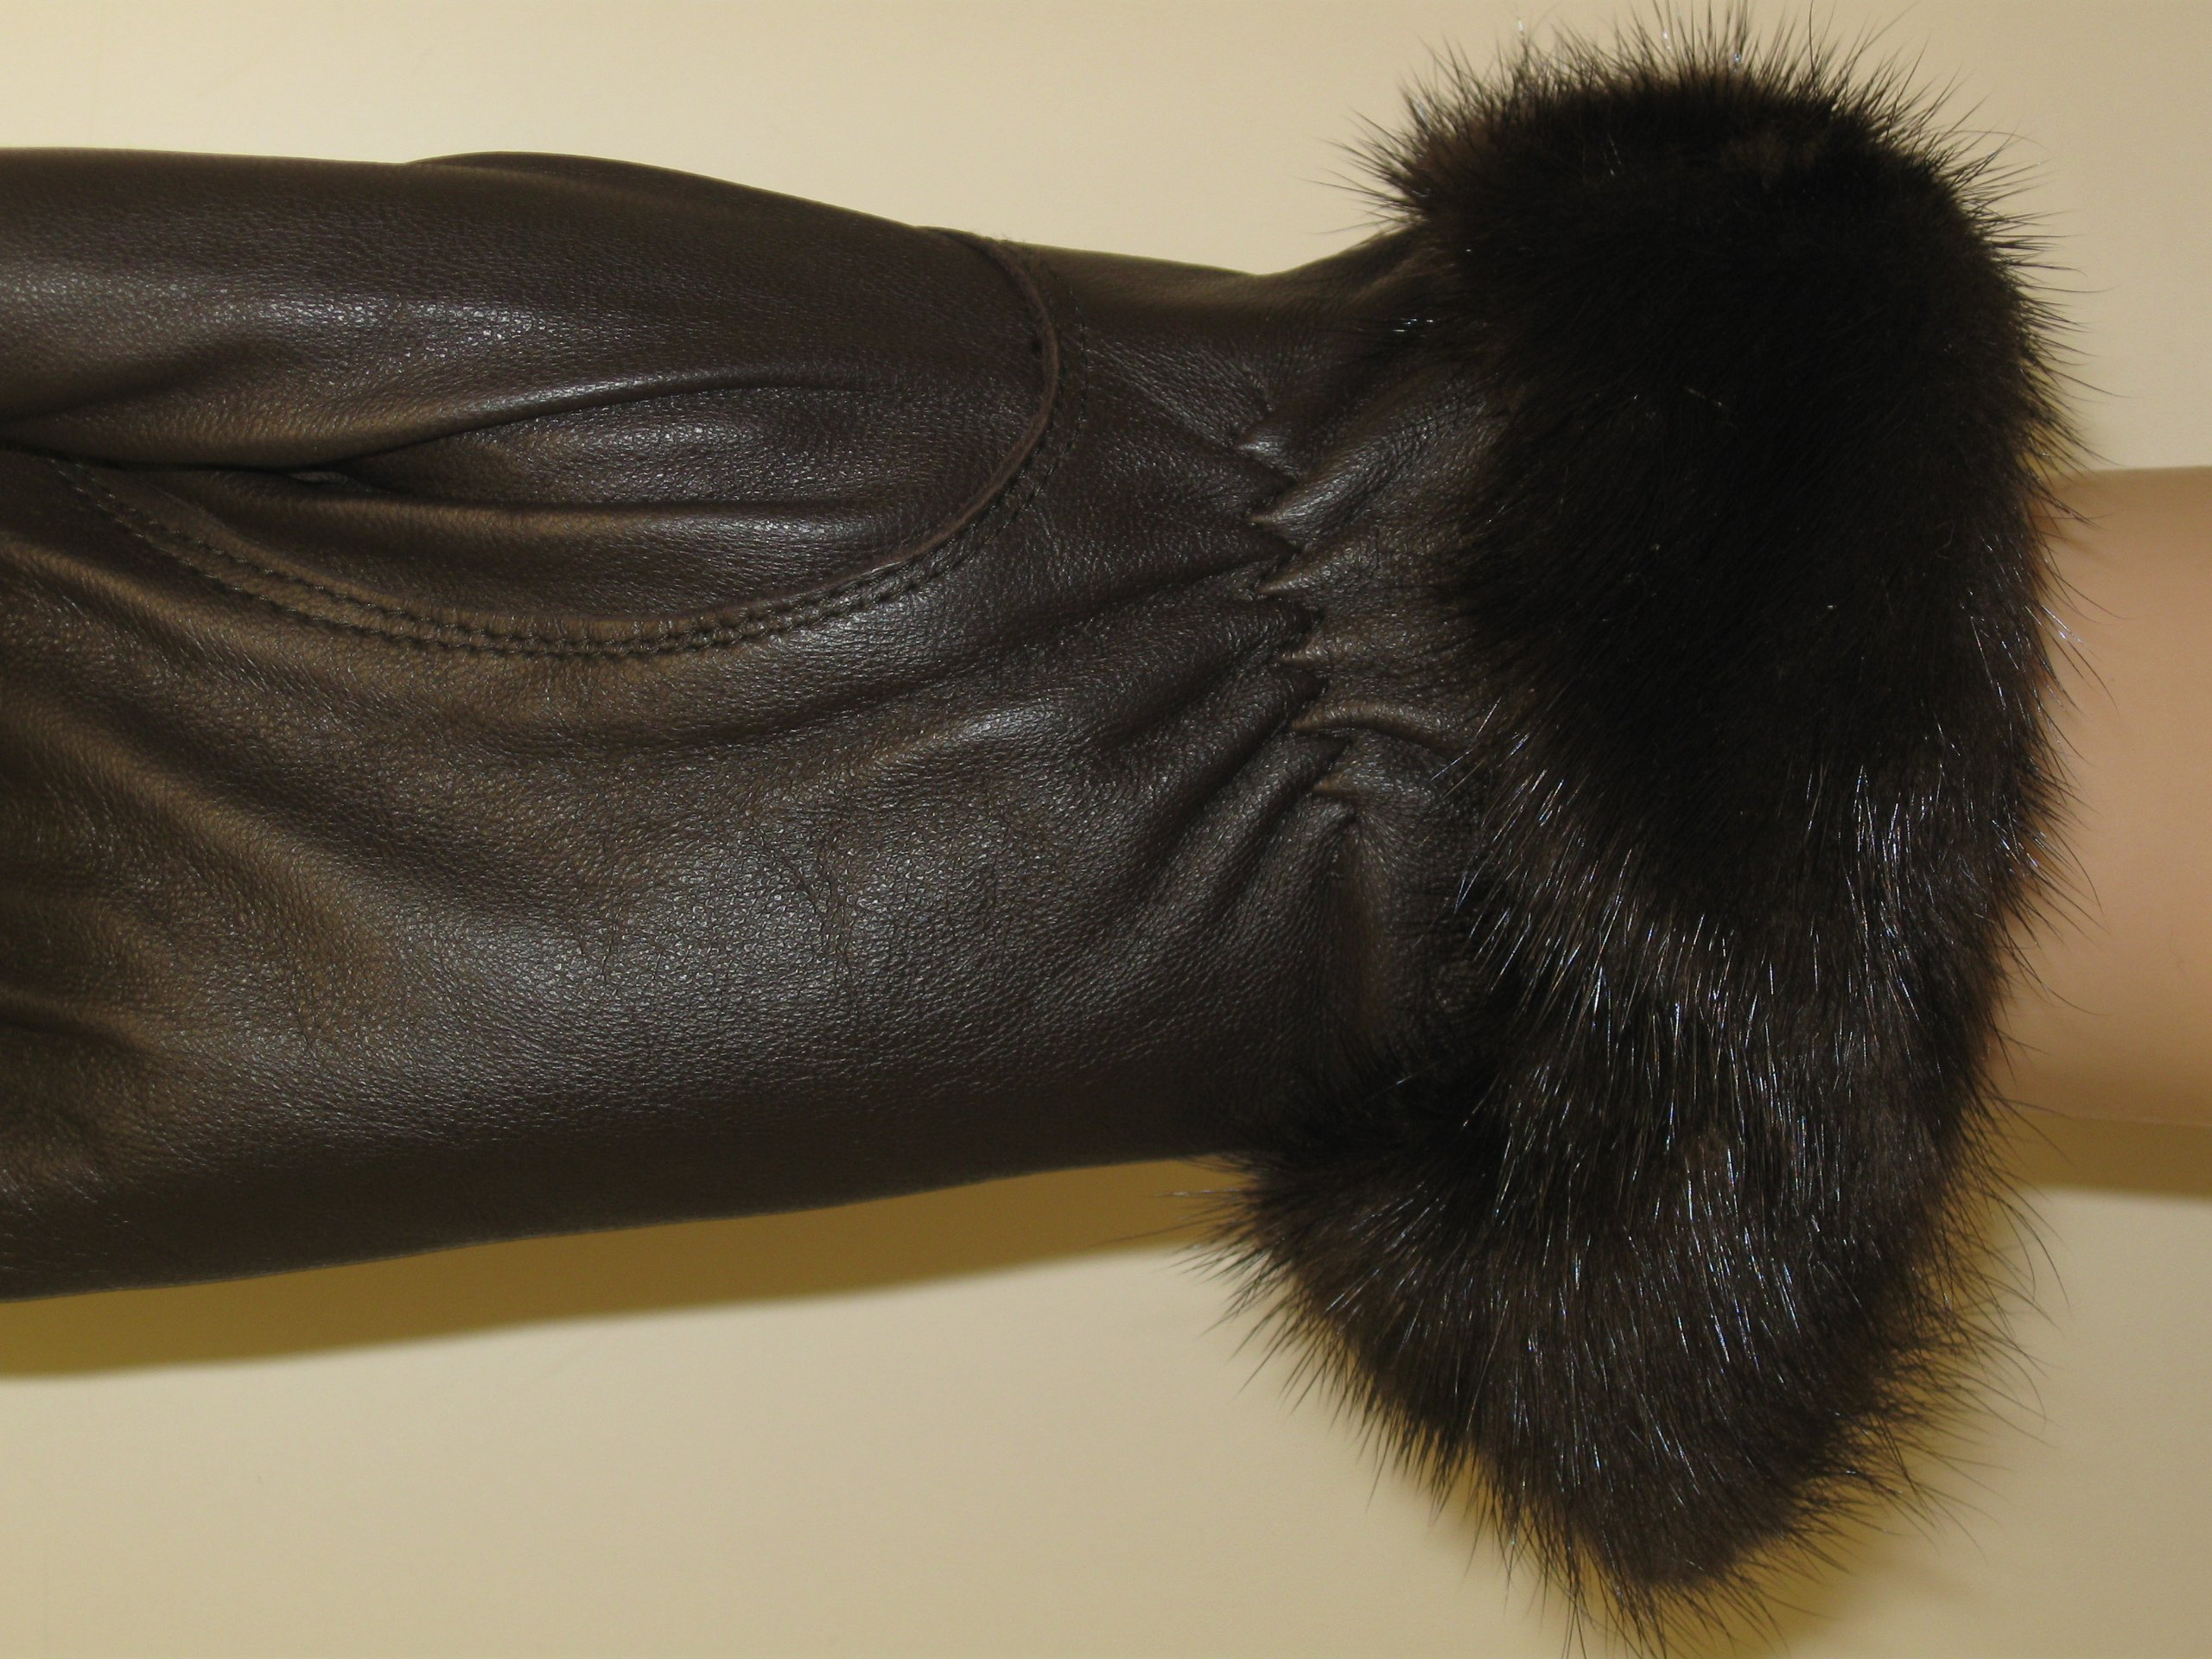 PURE LEATHER GLOVES TRIMMED WITH REAL MINK FUR AND LINED WITH MICROFIBER (LARGE, COFFEE BROWN)